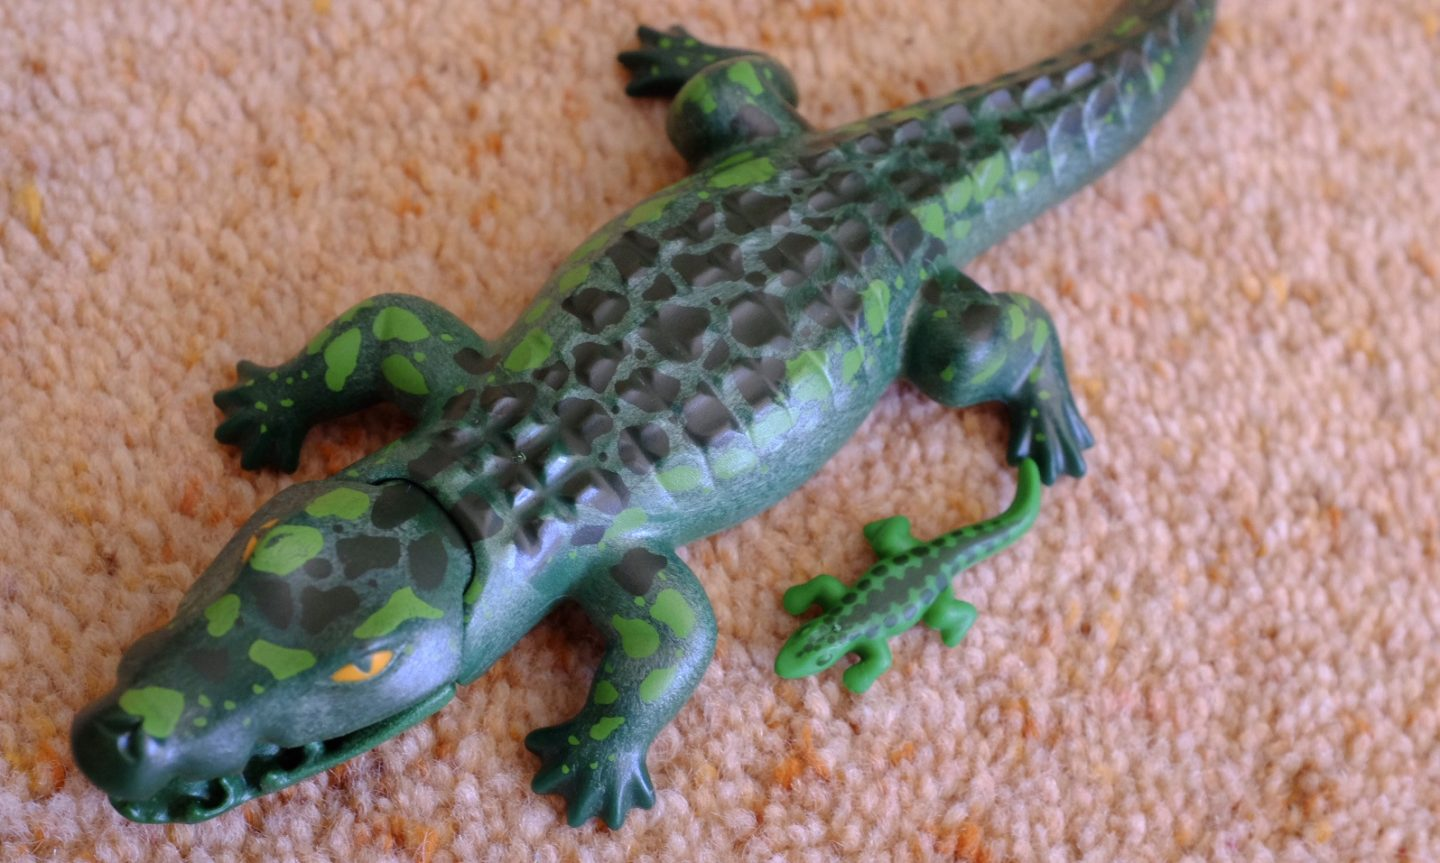 playmobil alligator and baby alligator